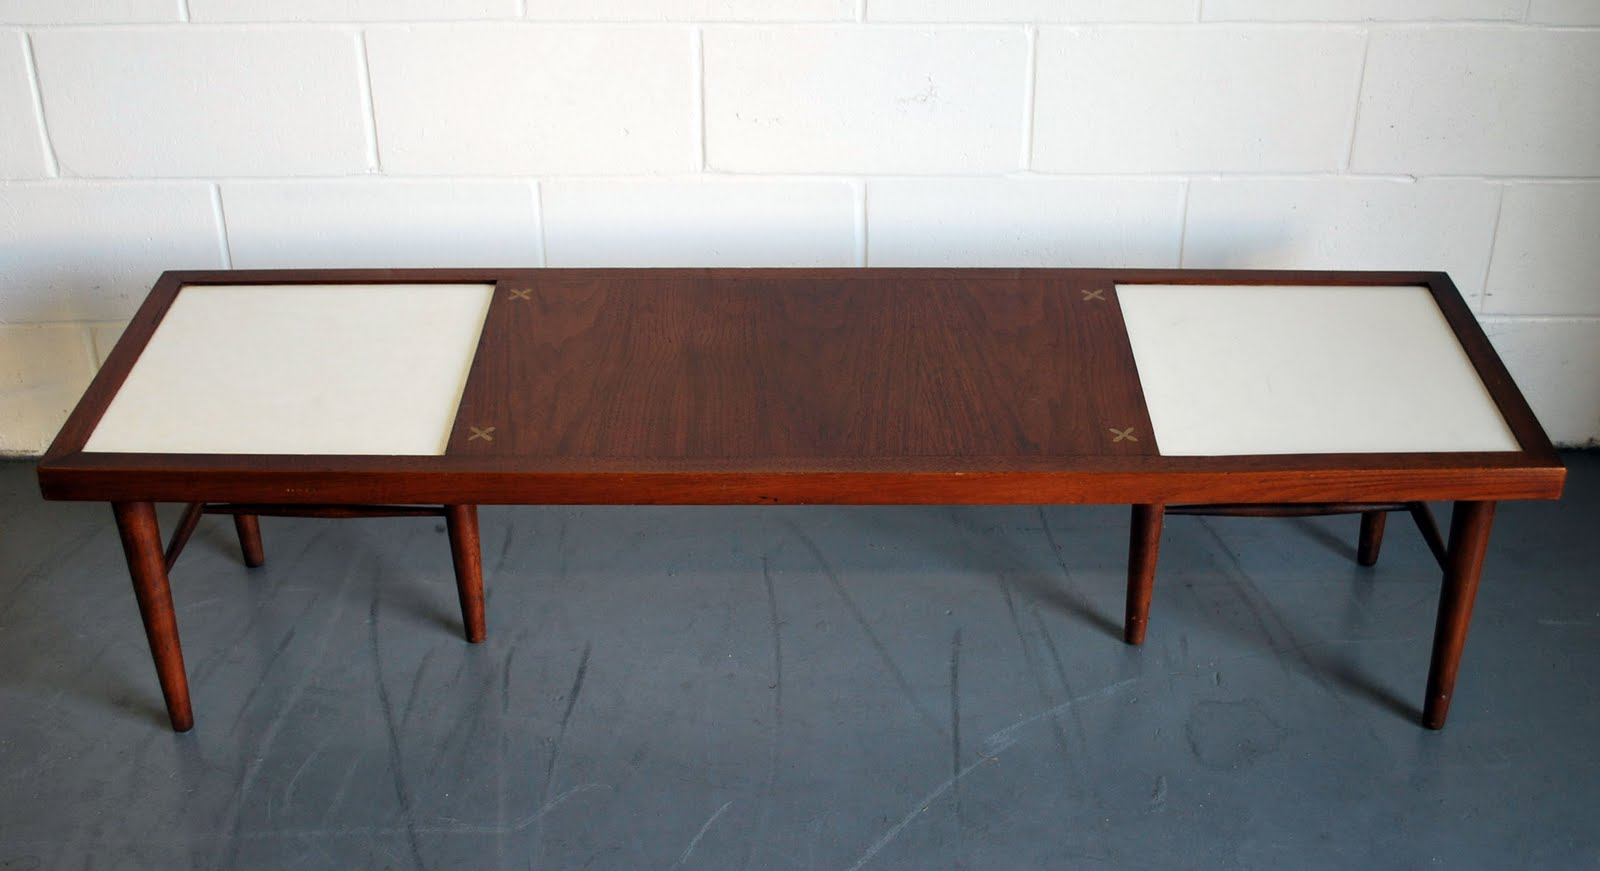 Junk2funk mid century modern coffee table Mid century coffee tables